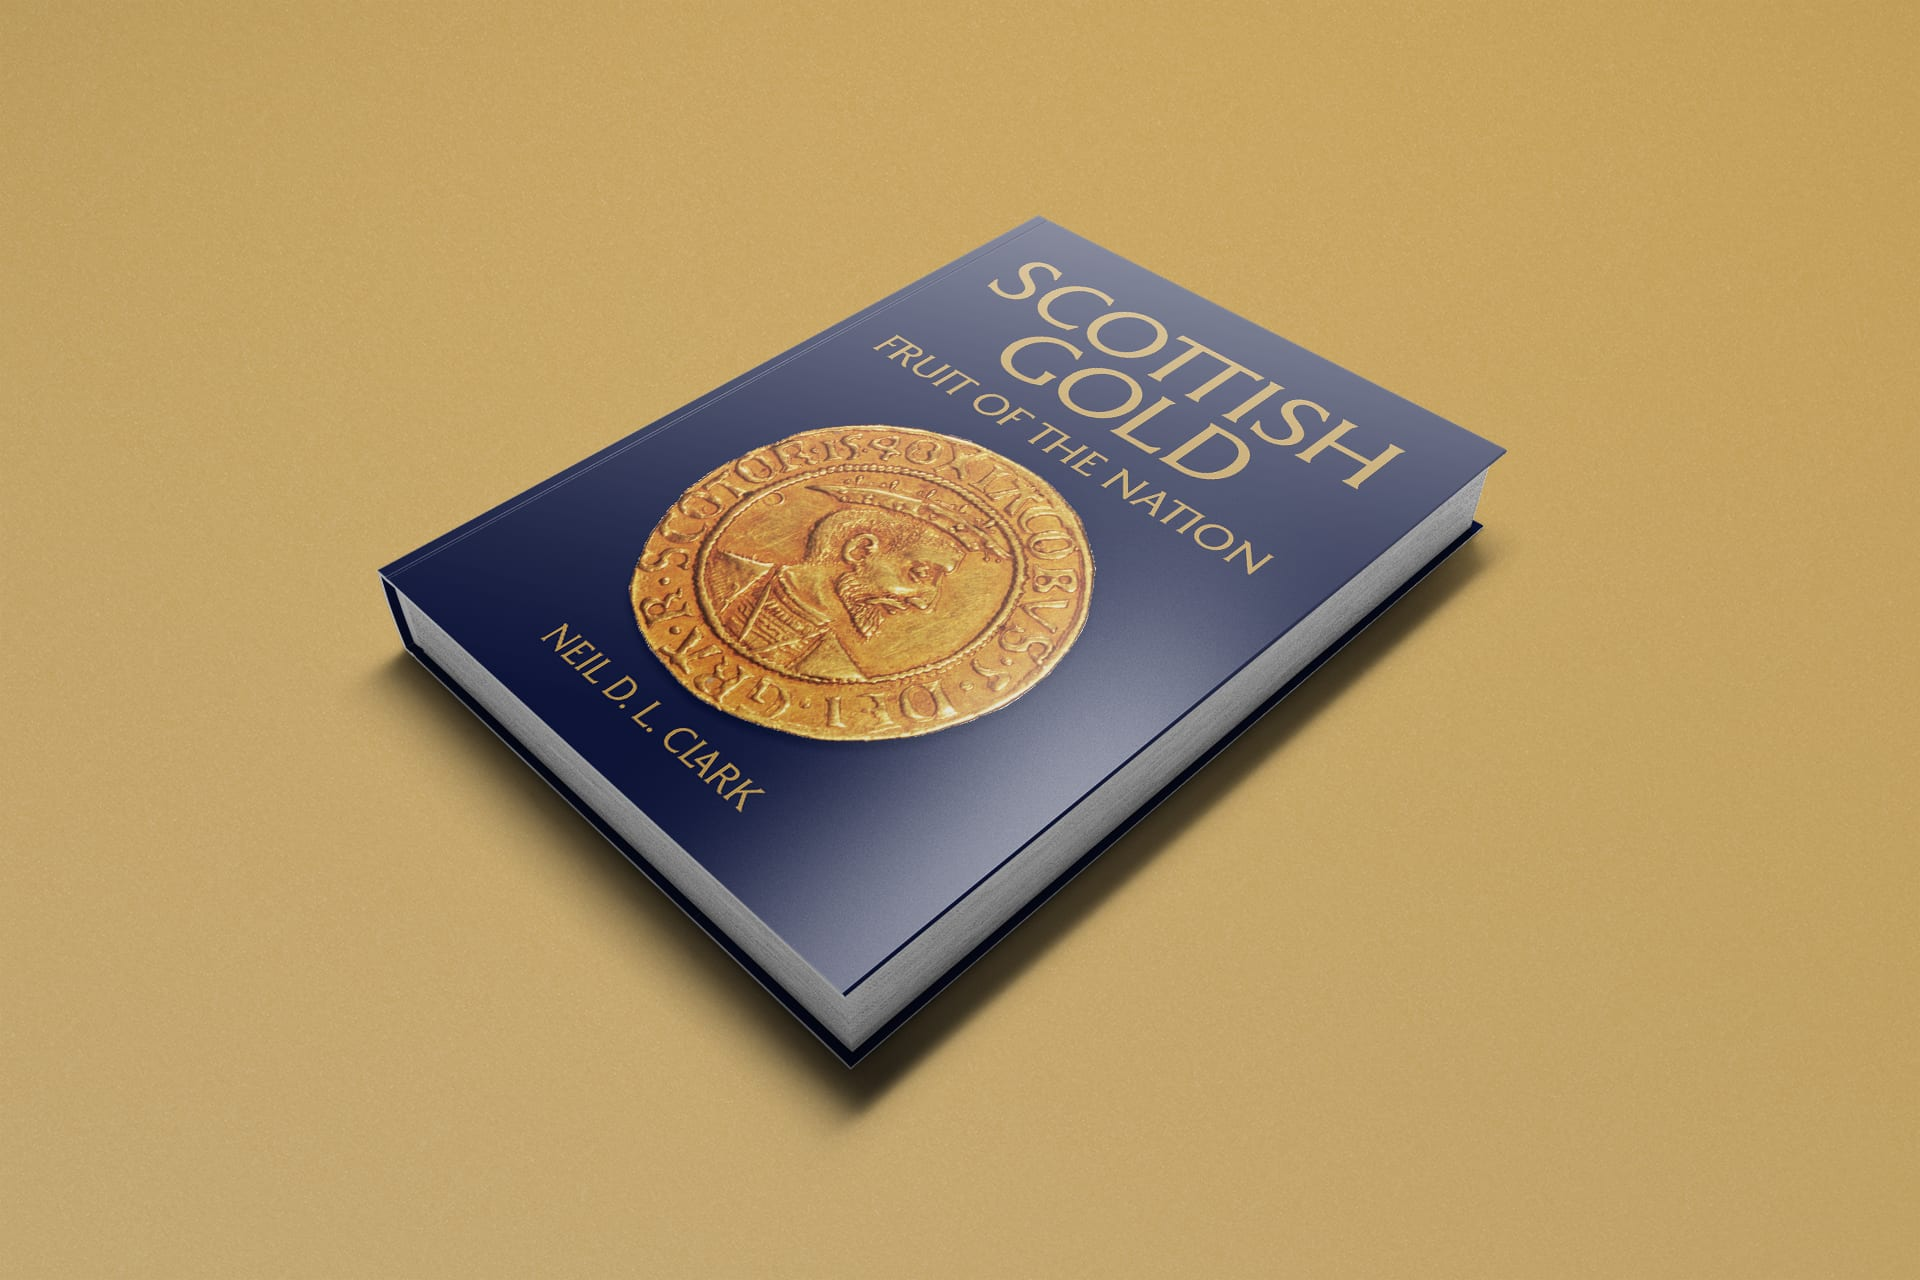 Scottish Gold by Neil D. L. Clark Book Design